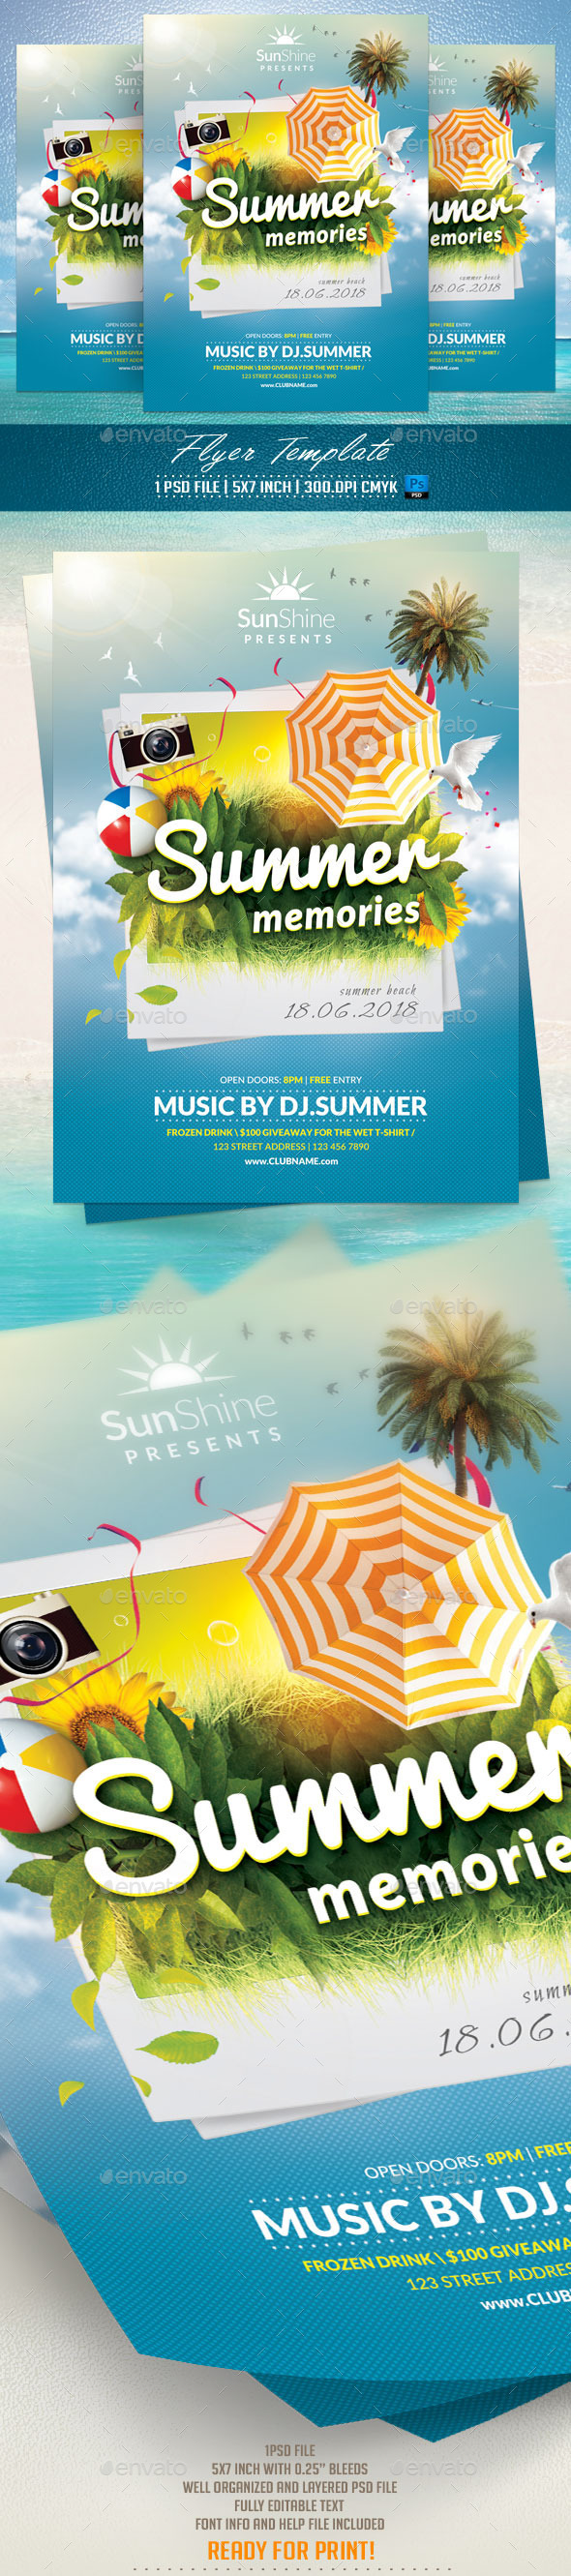 GraphicRiver Summer Memories Flyer Template 11830756